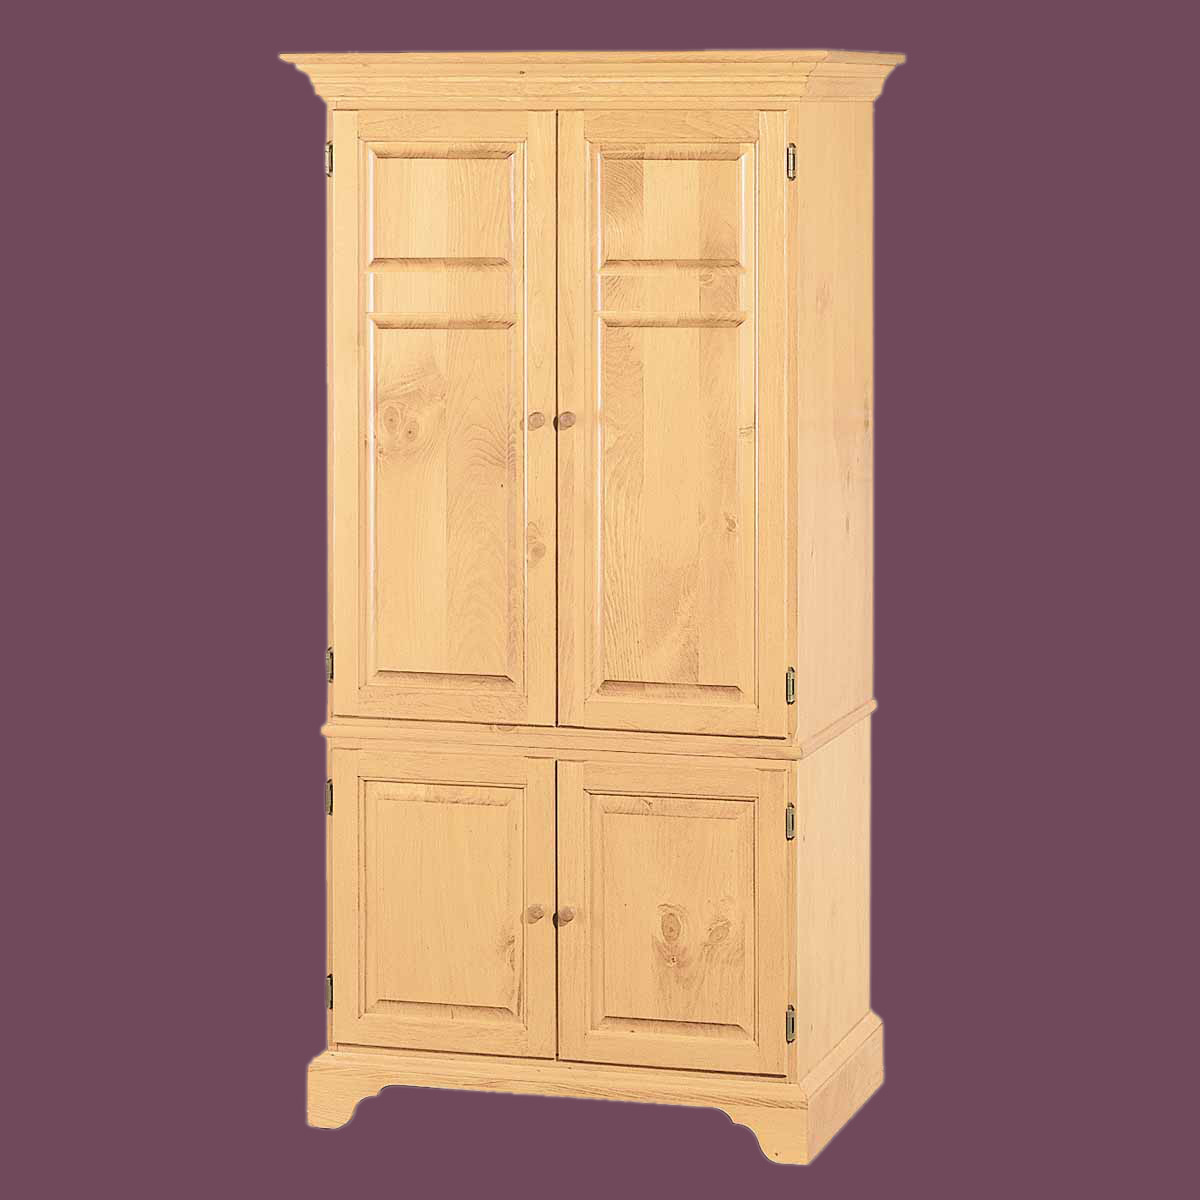 natural solid pine computer armoire kit easy assembly. Black Bedroom Furniture Sets. Home Design Ideas